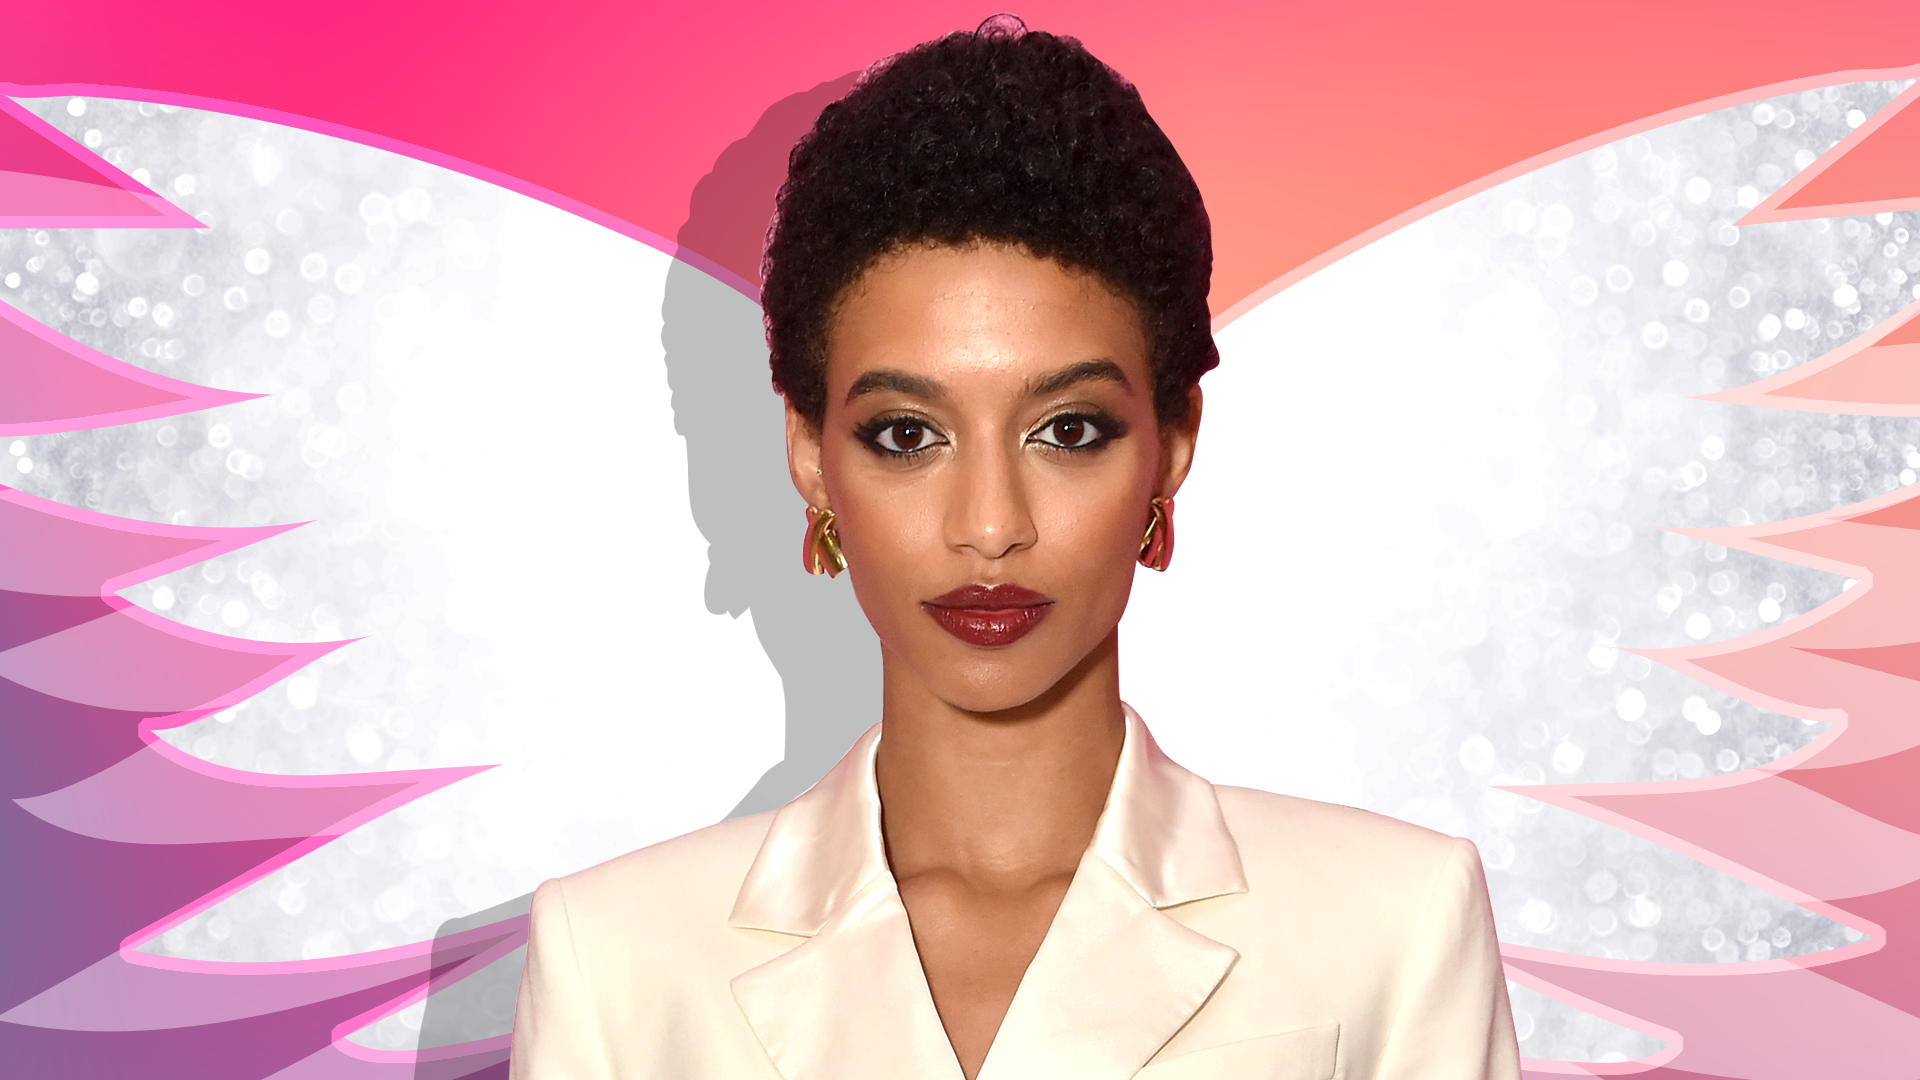 Victoria's Secret Model Jourdana Phillips Is Over Hearing Excuses About Her Natural Hair